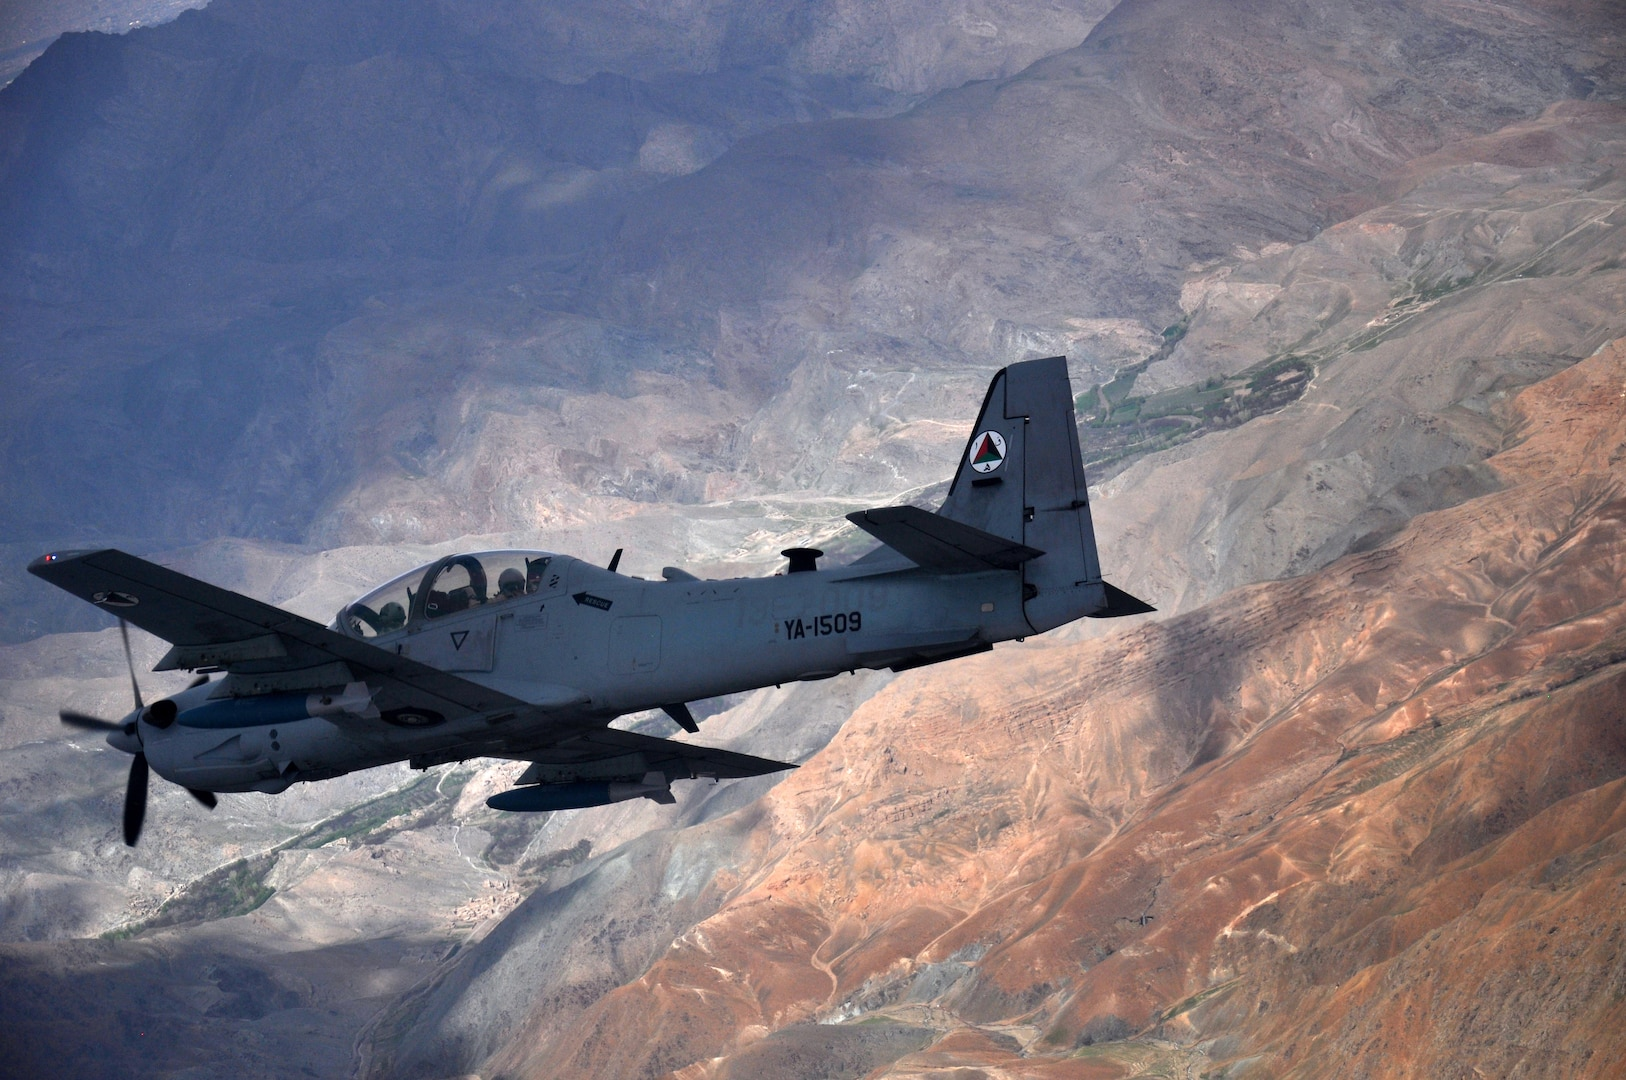 An Afghan air force A-29 Super Tucano flies over Afghanistan during a training mission April 6, 2016. Train, Advise, Assist Command-Air worked daily with the Afghan air force to help build a professional, sustainable and capable air force. (U.S. Air Force photo by Capt. Eydie Sakura)